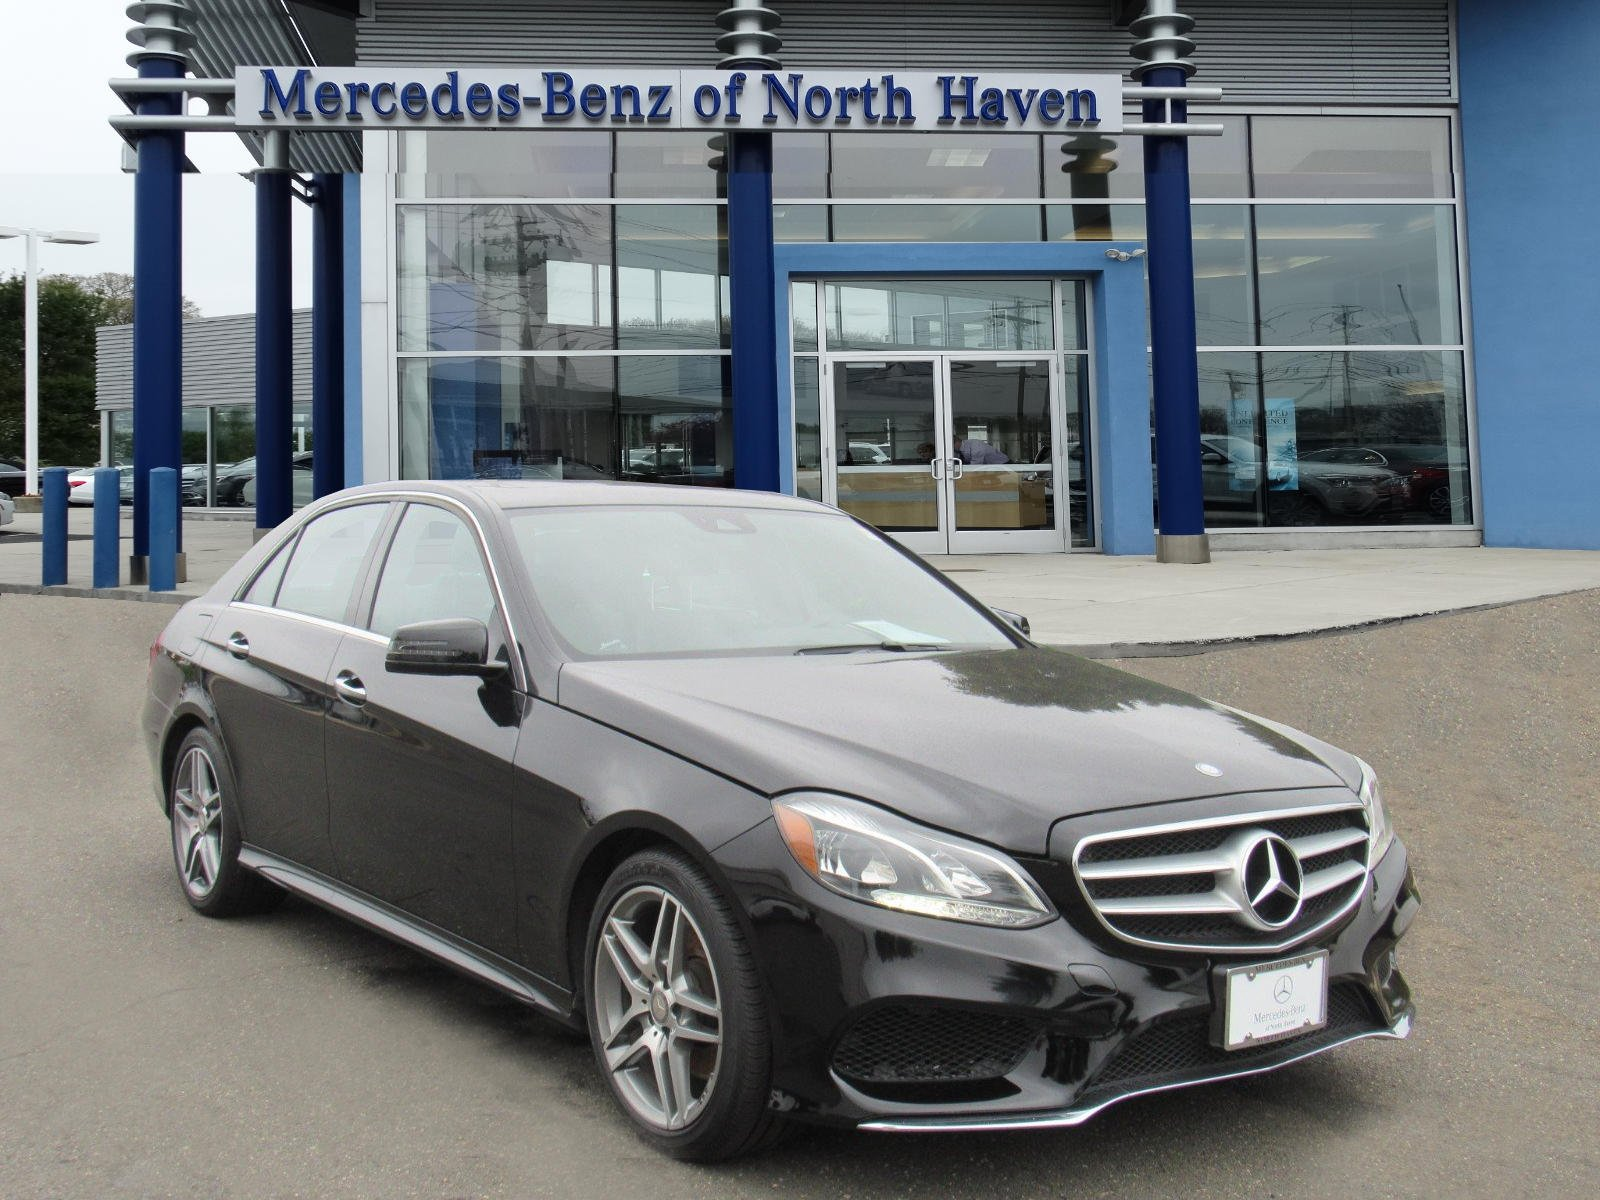 Pre Owned 2016 Mercedes Benz E Class E 350 SEDAN in North Haven